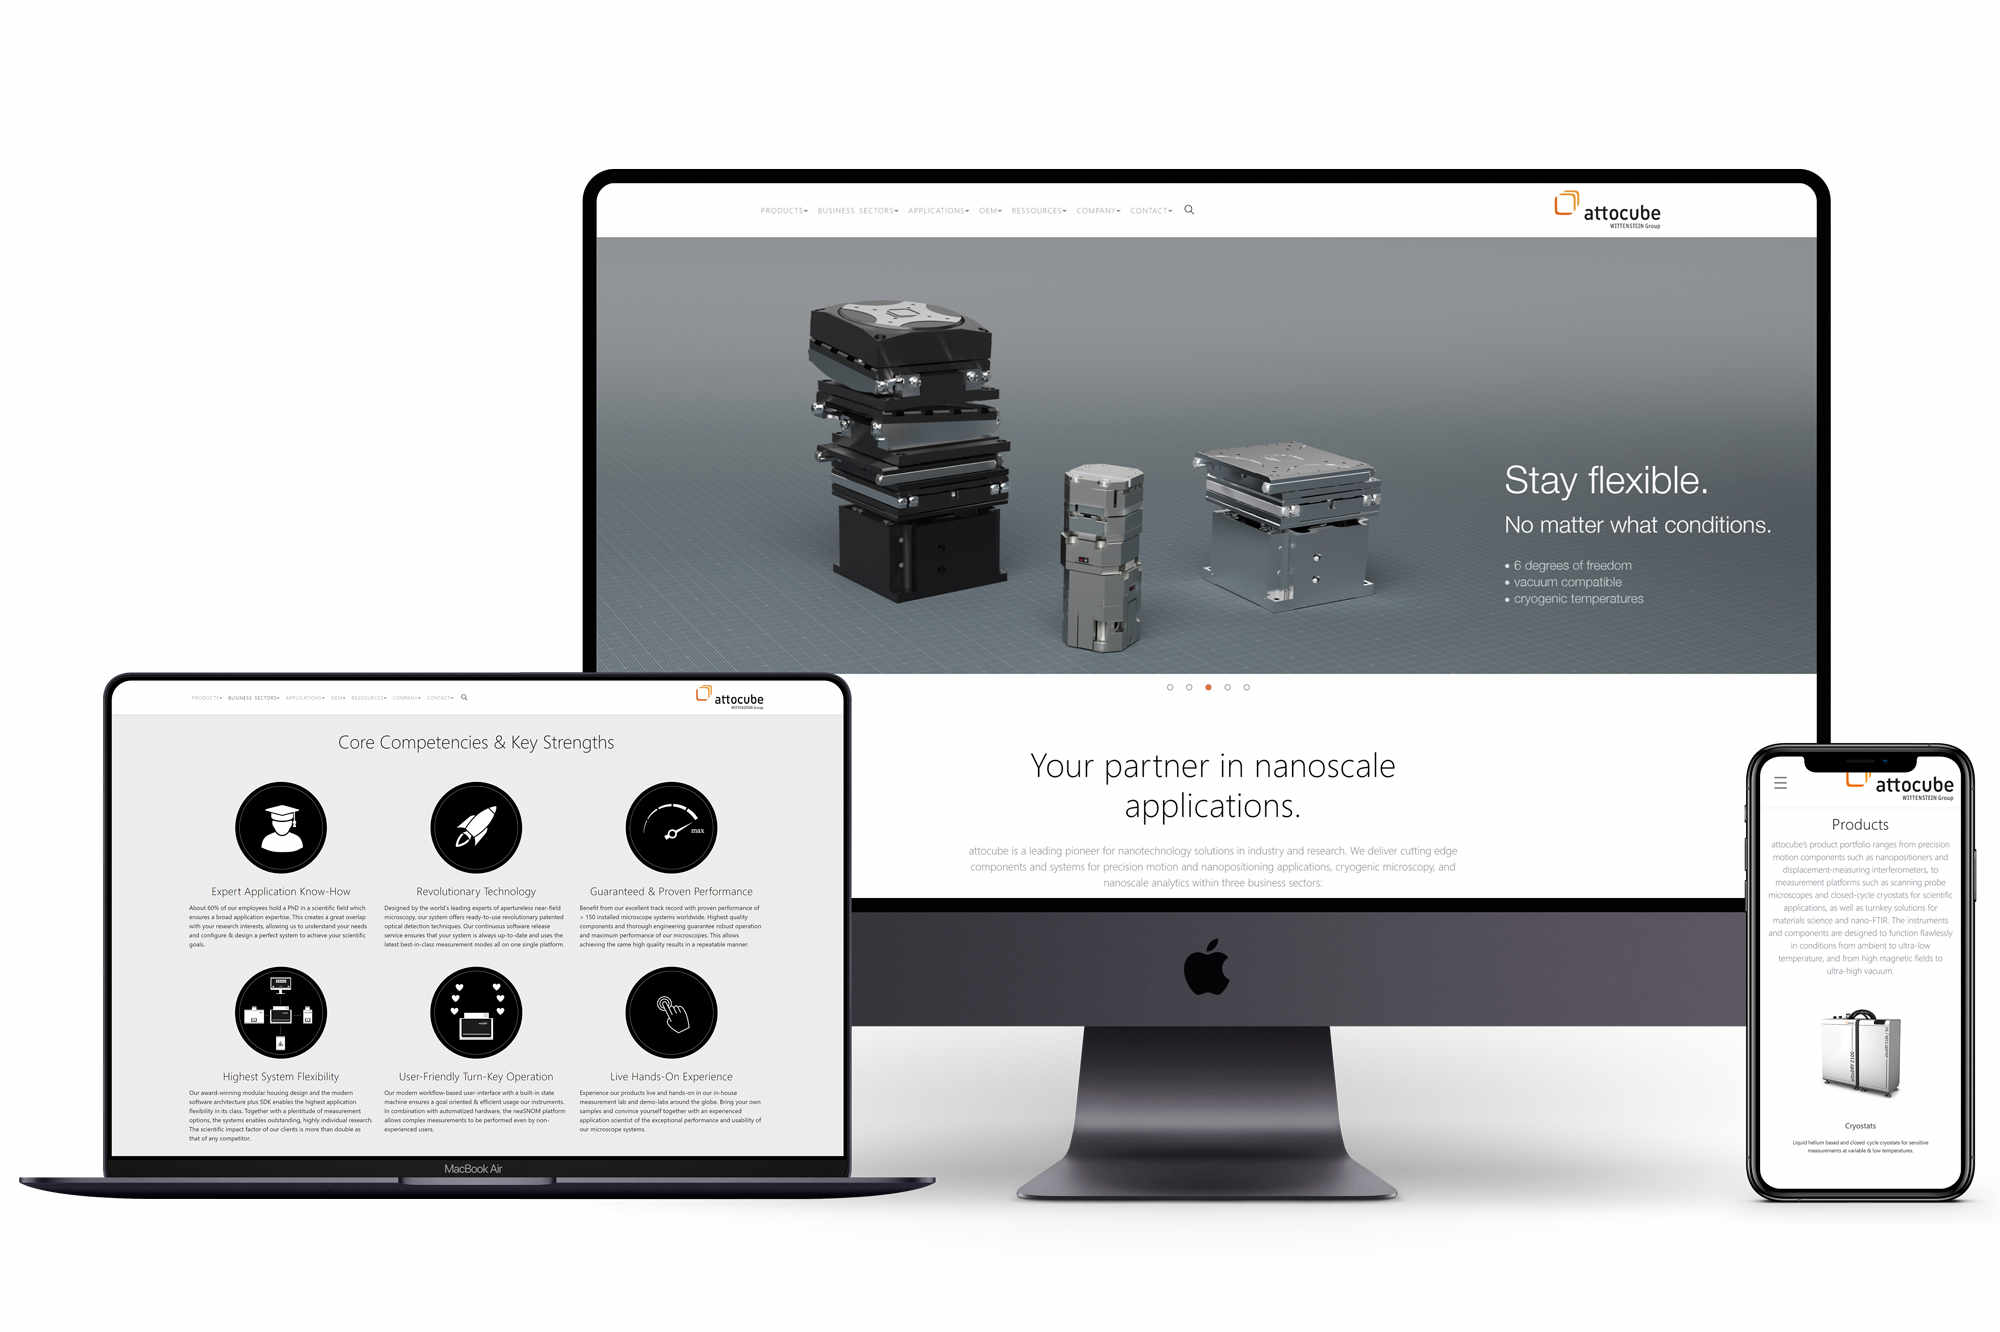 Unternehmenswebseite, Referenz, attocube systems AG, Mockups, multidevice